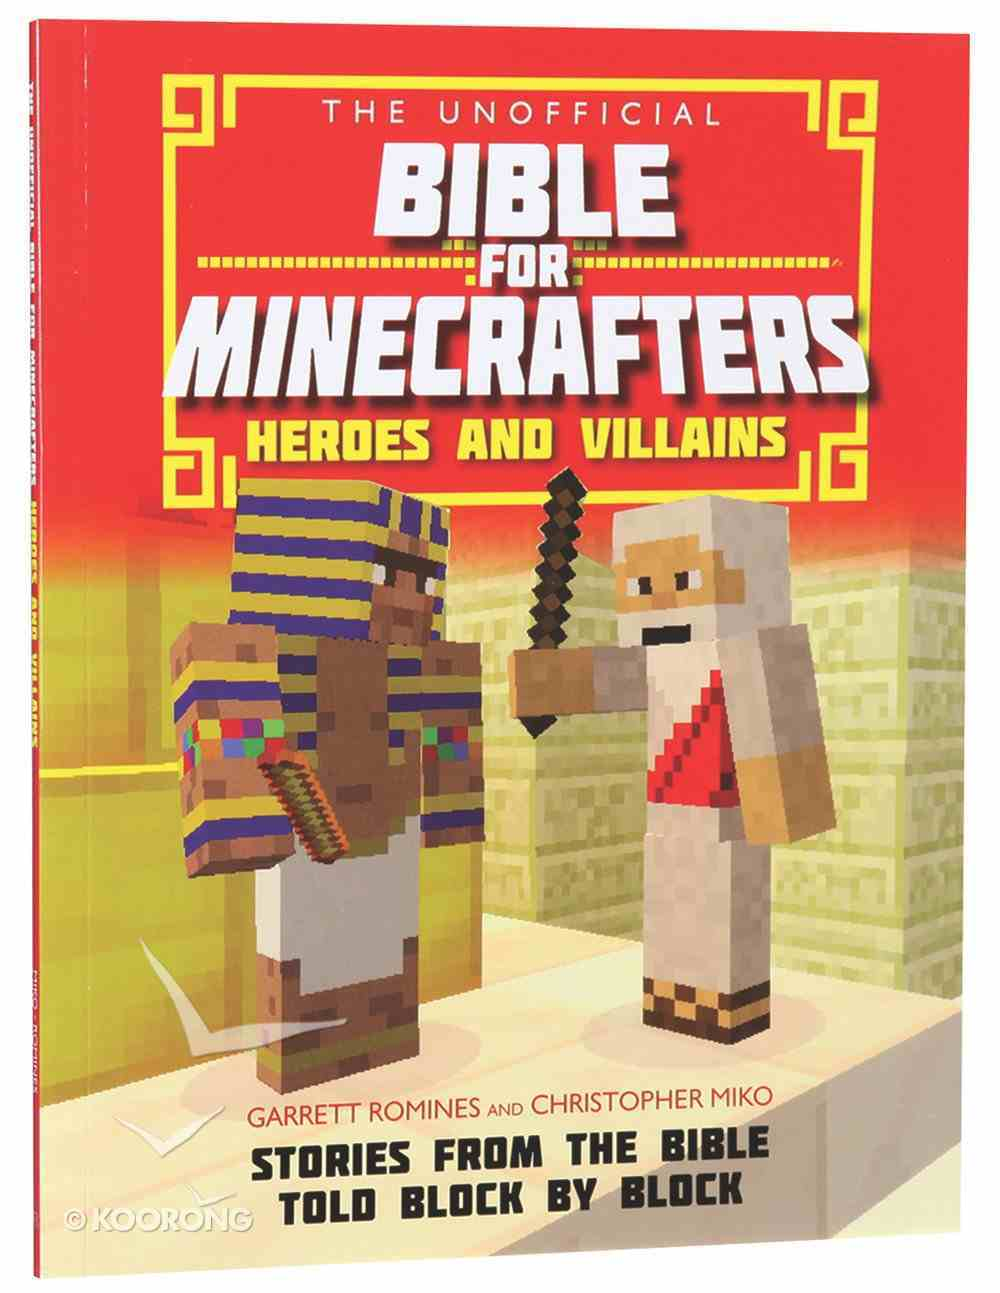 The Unofficial Bible For Minecrafters: Heroes and Villains Paperback